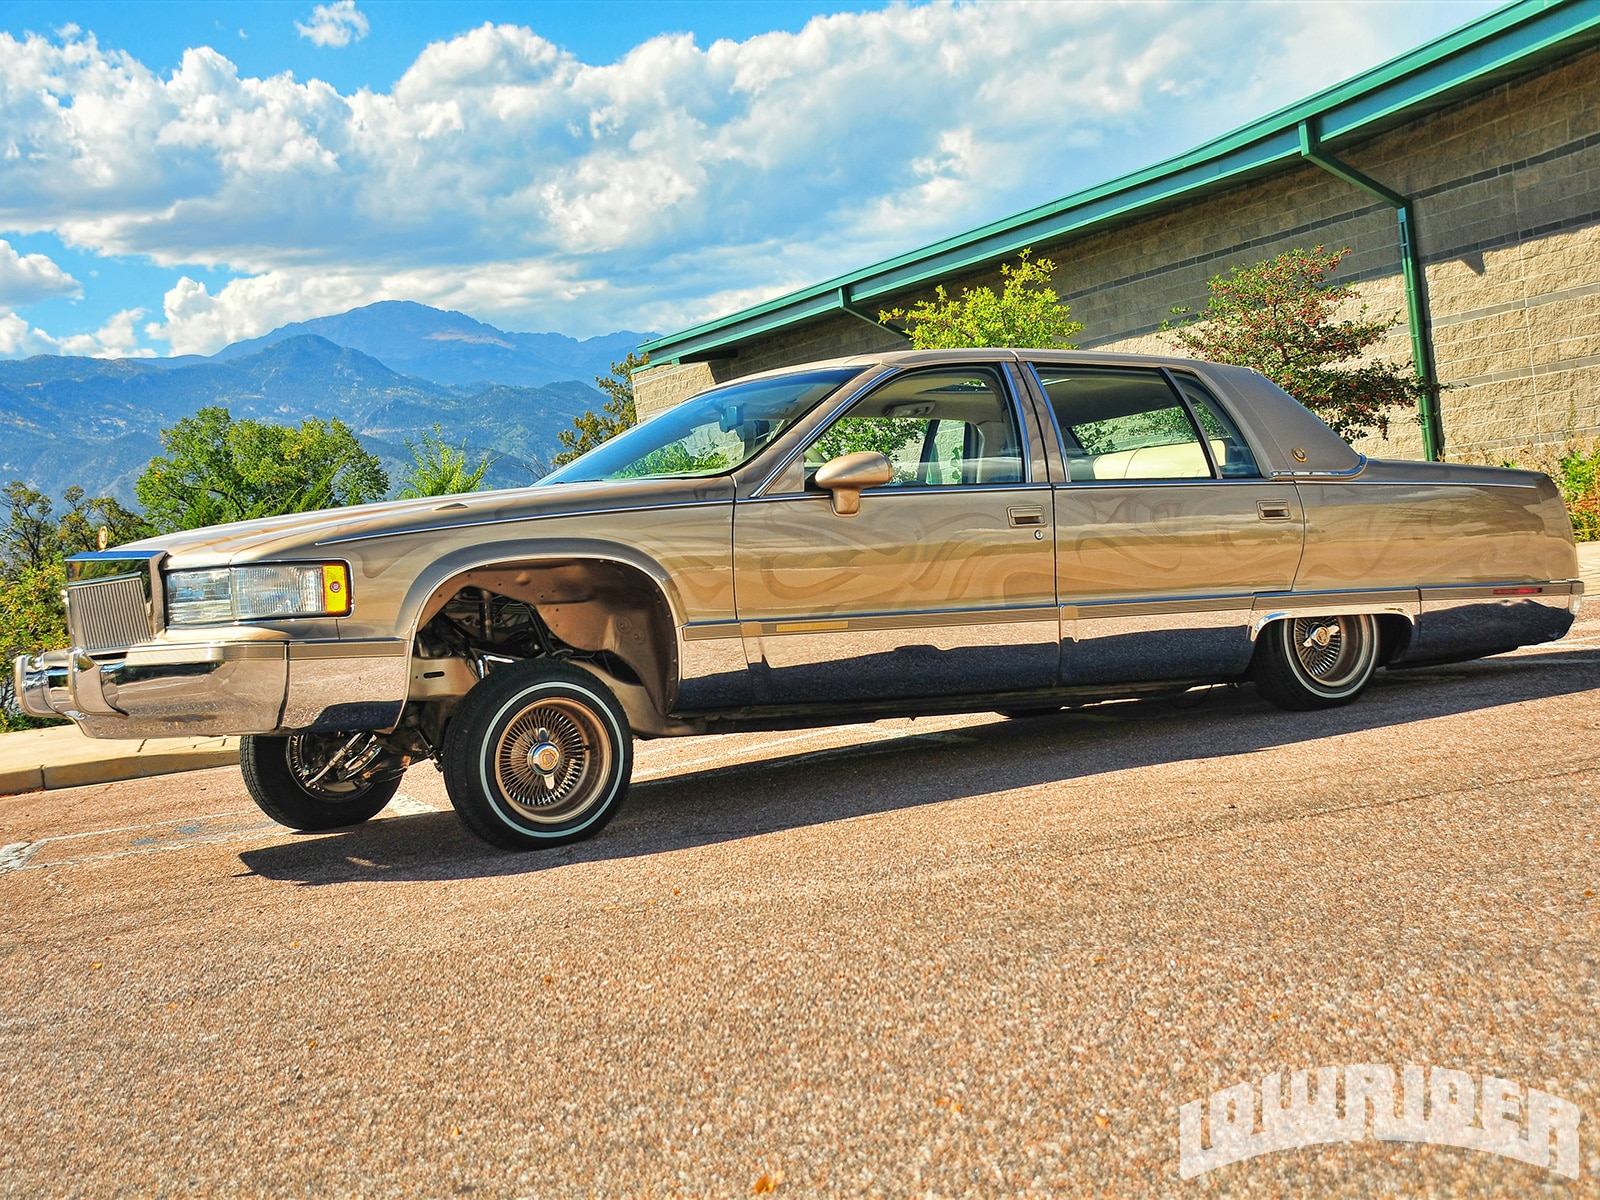 1993-cadillac-fleetwood-left-side-view - Lowrider